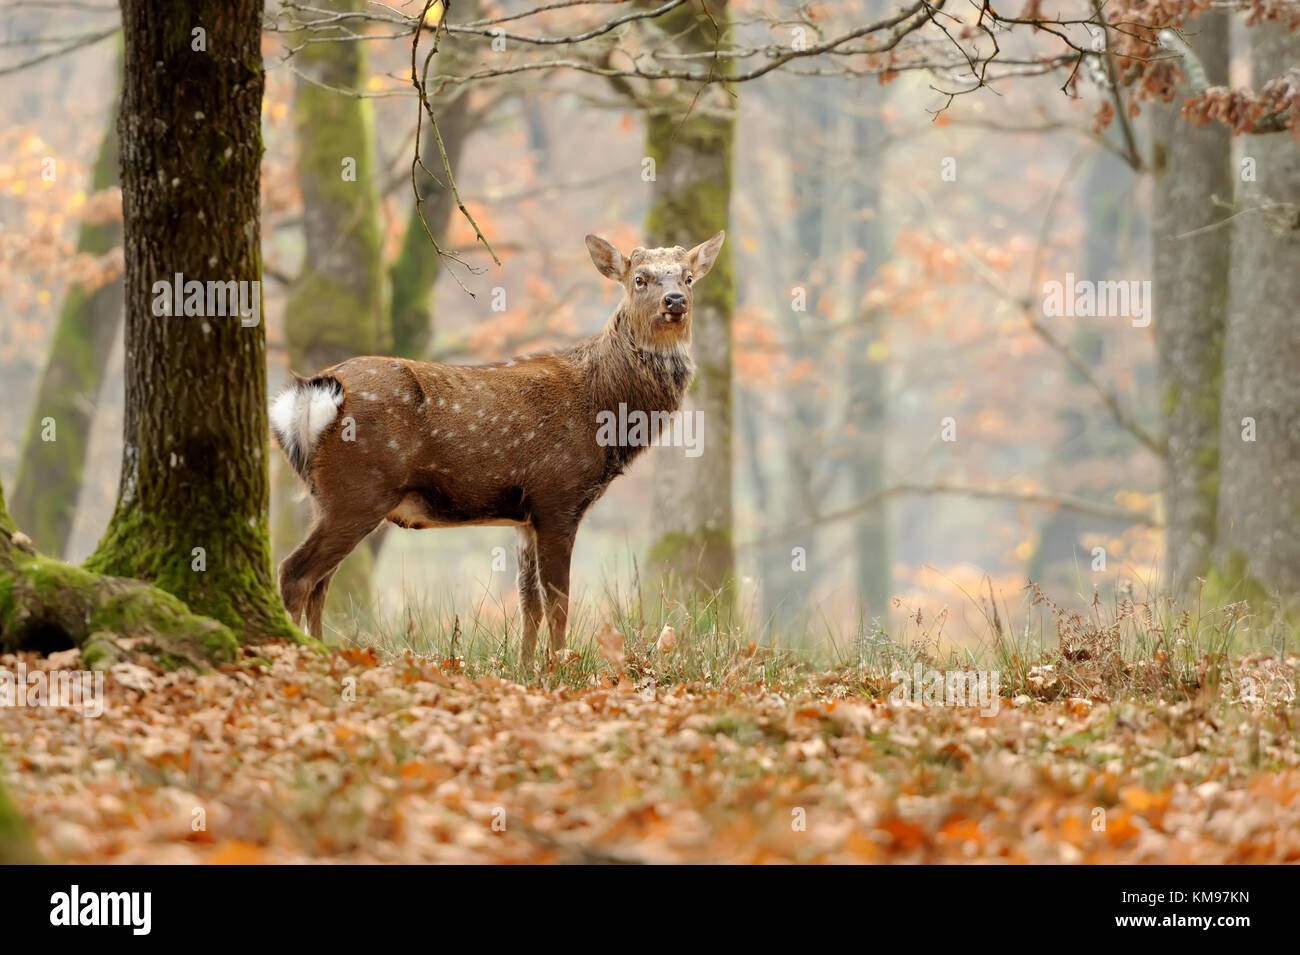 Close-up young whitetail deer standing in autumn day - Stock Image